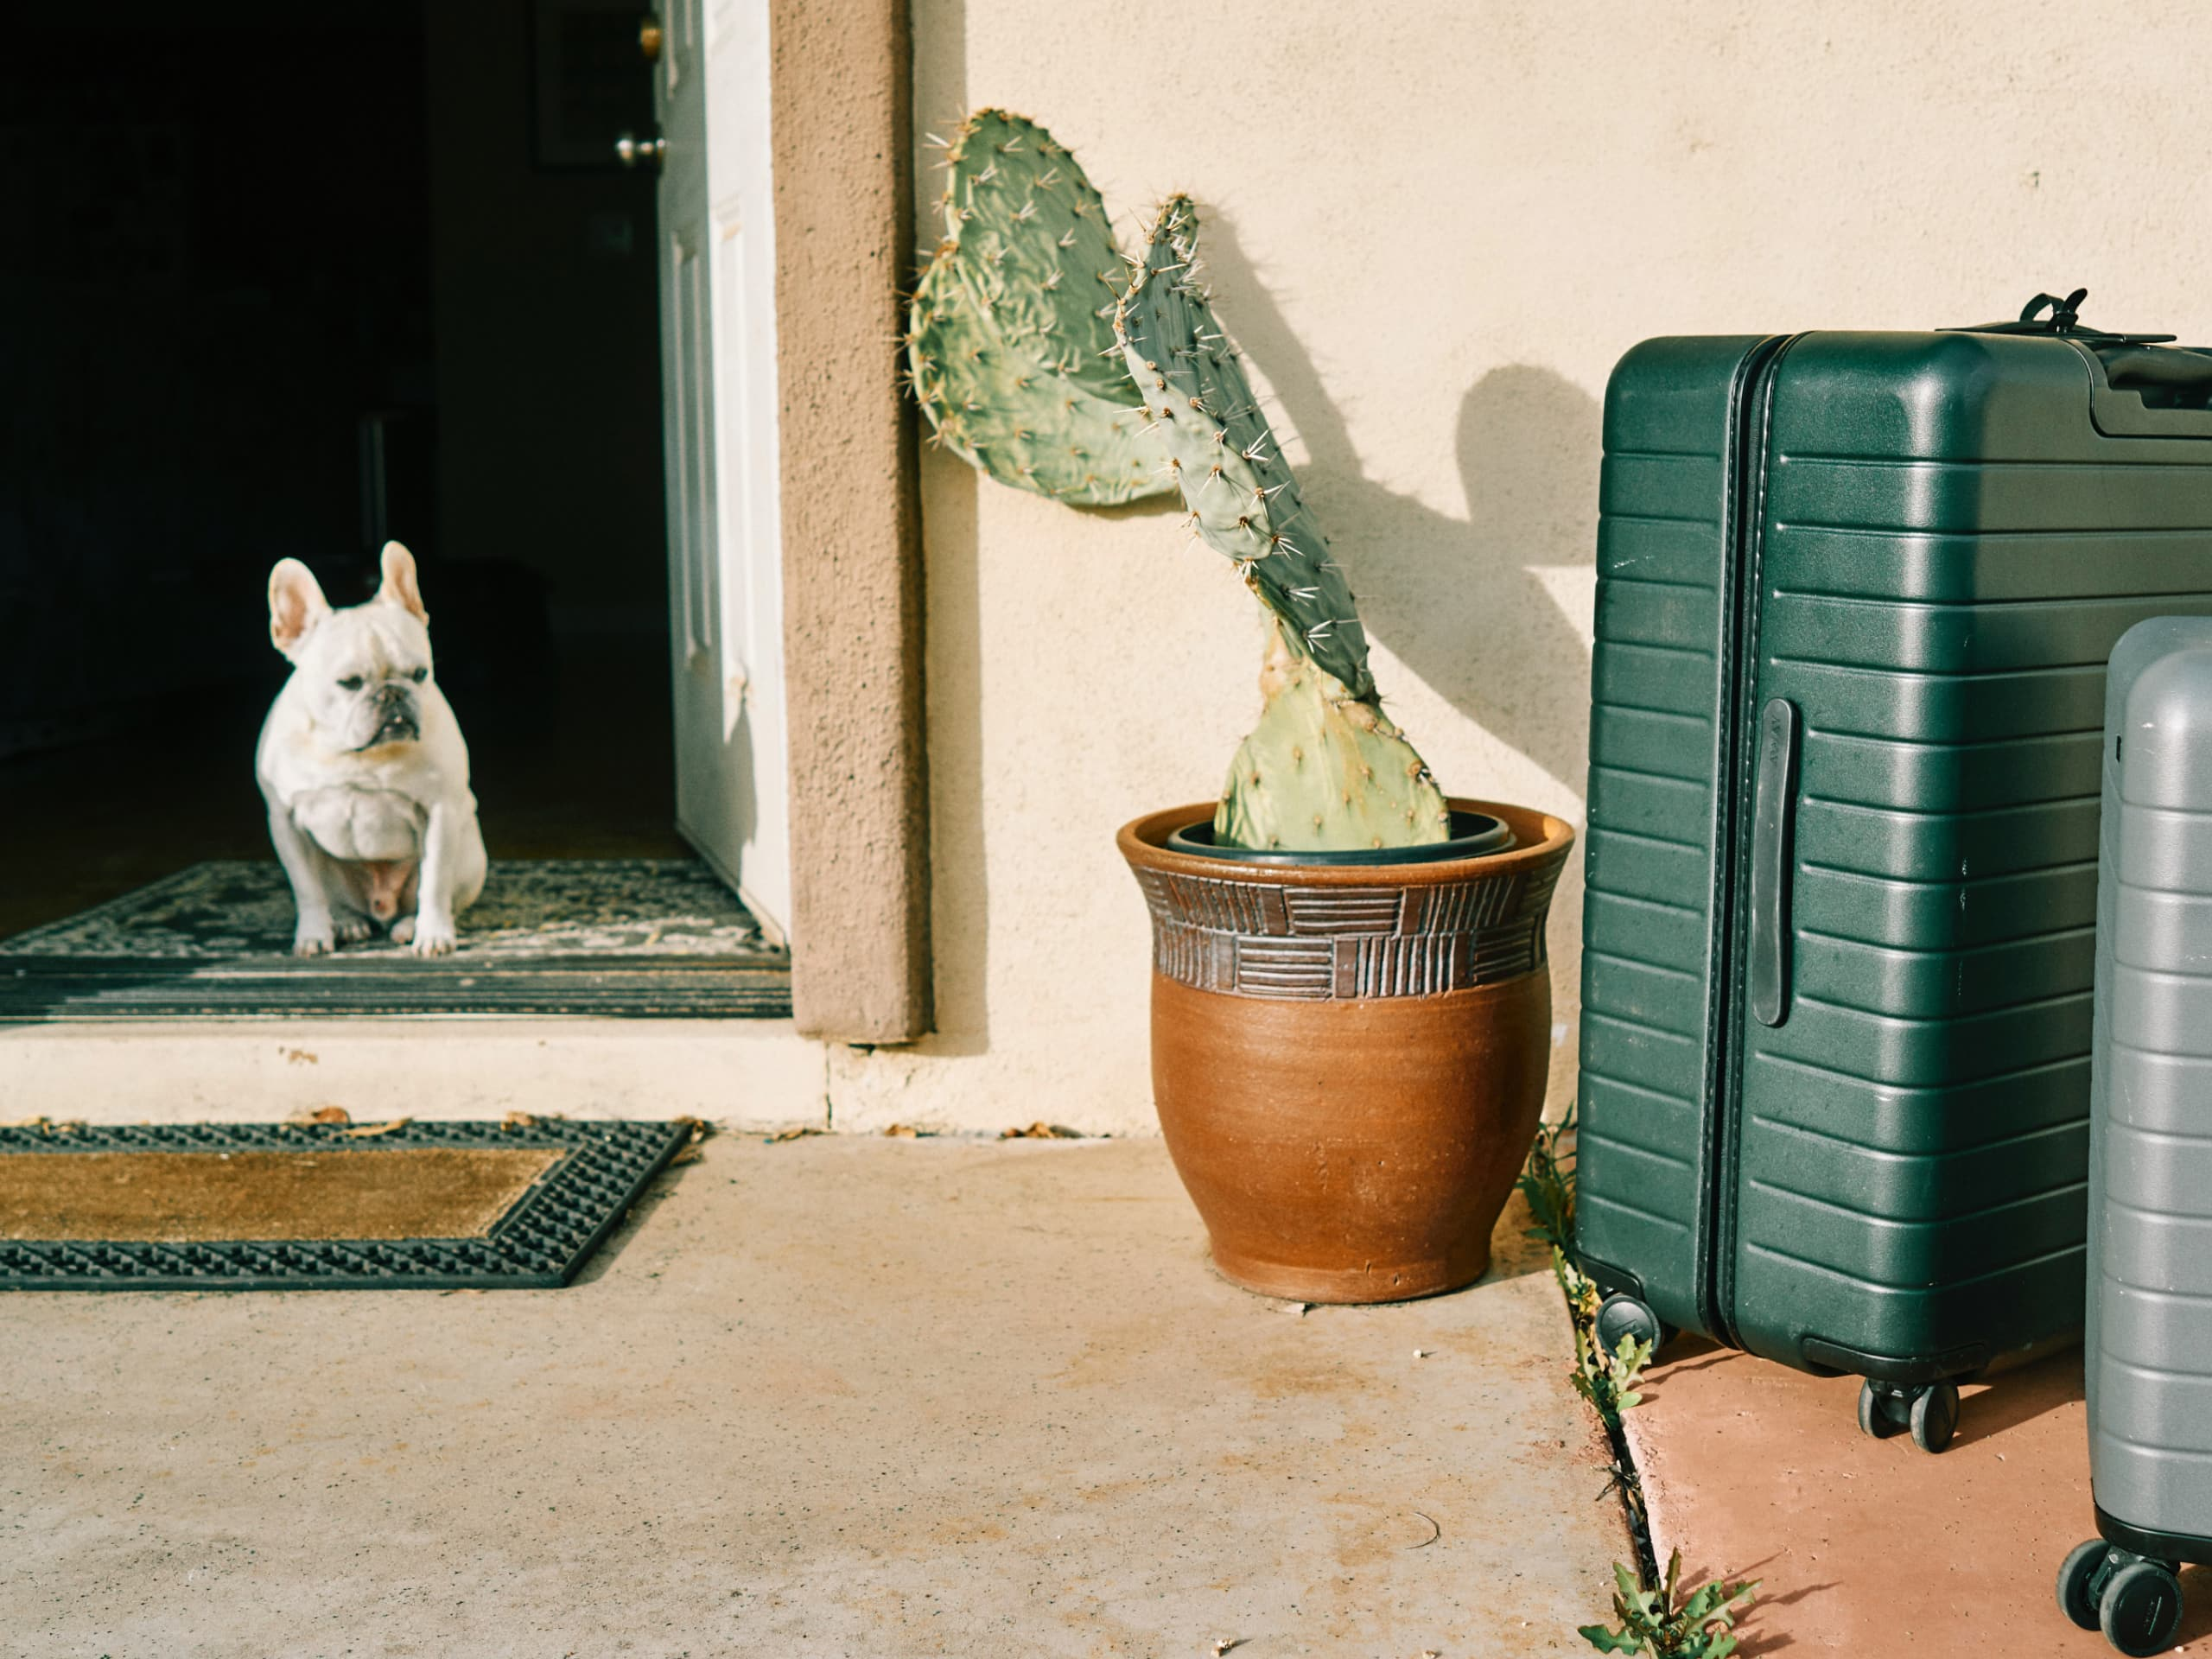 White French Bulldog standing next to a suitcase